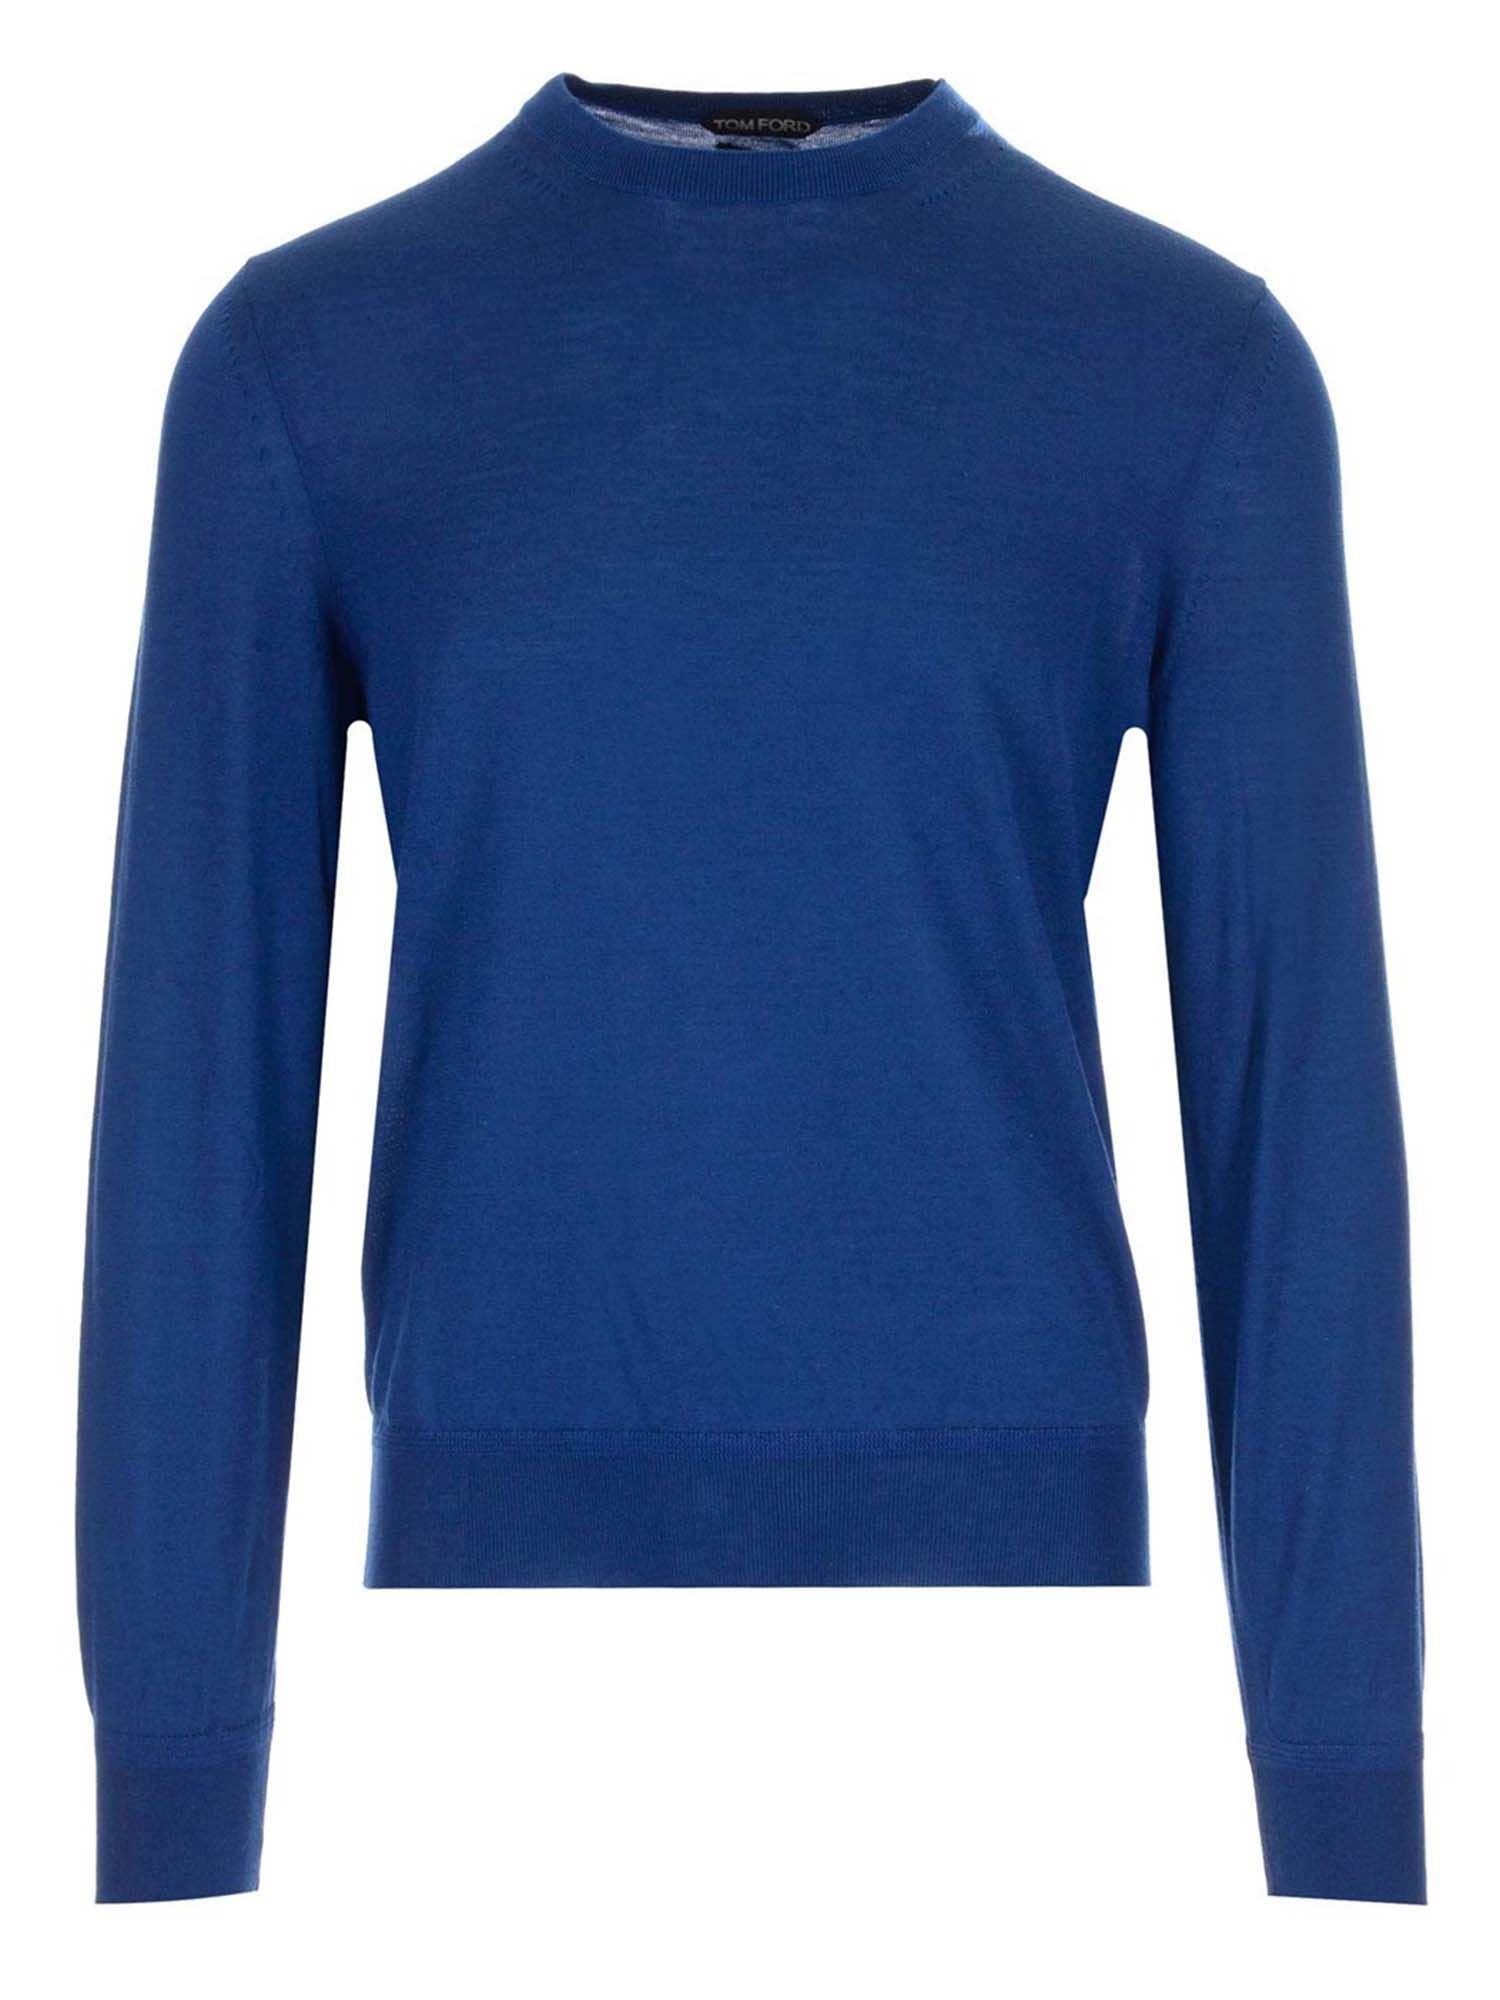 Tom Ford CASHMERE SWEATER IN BLUE